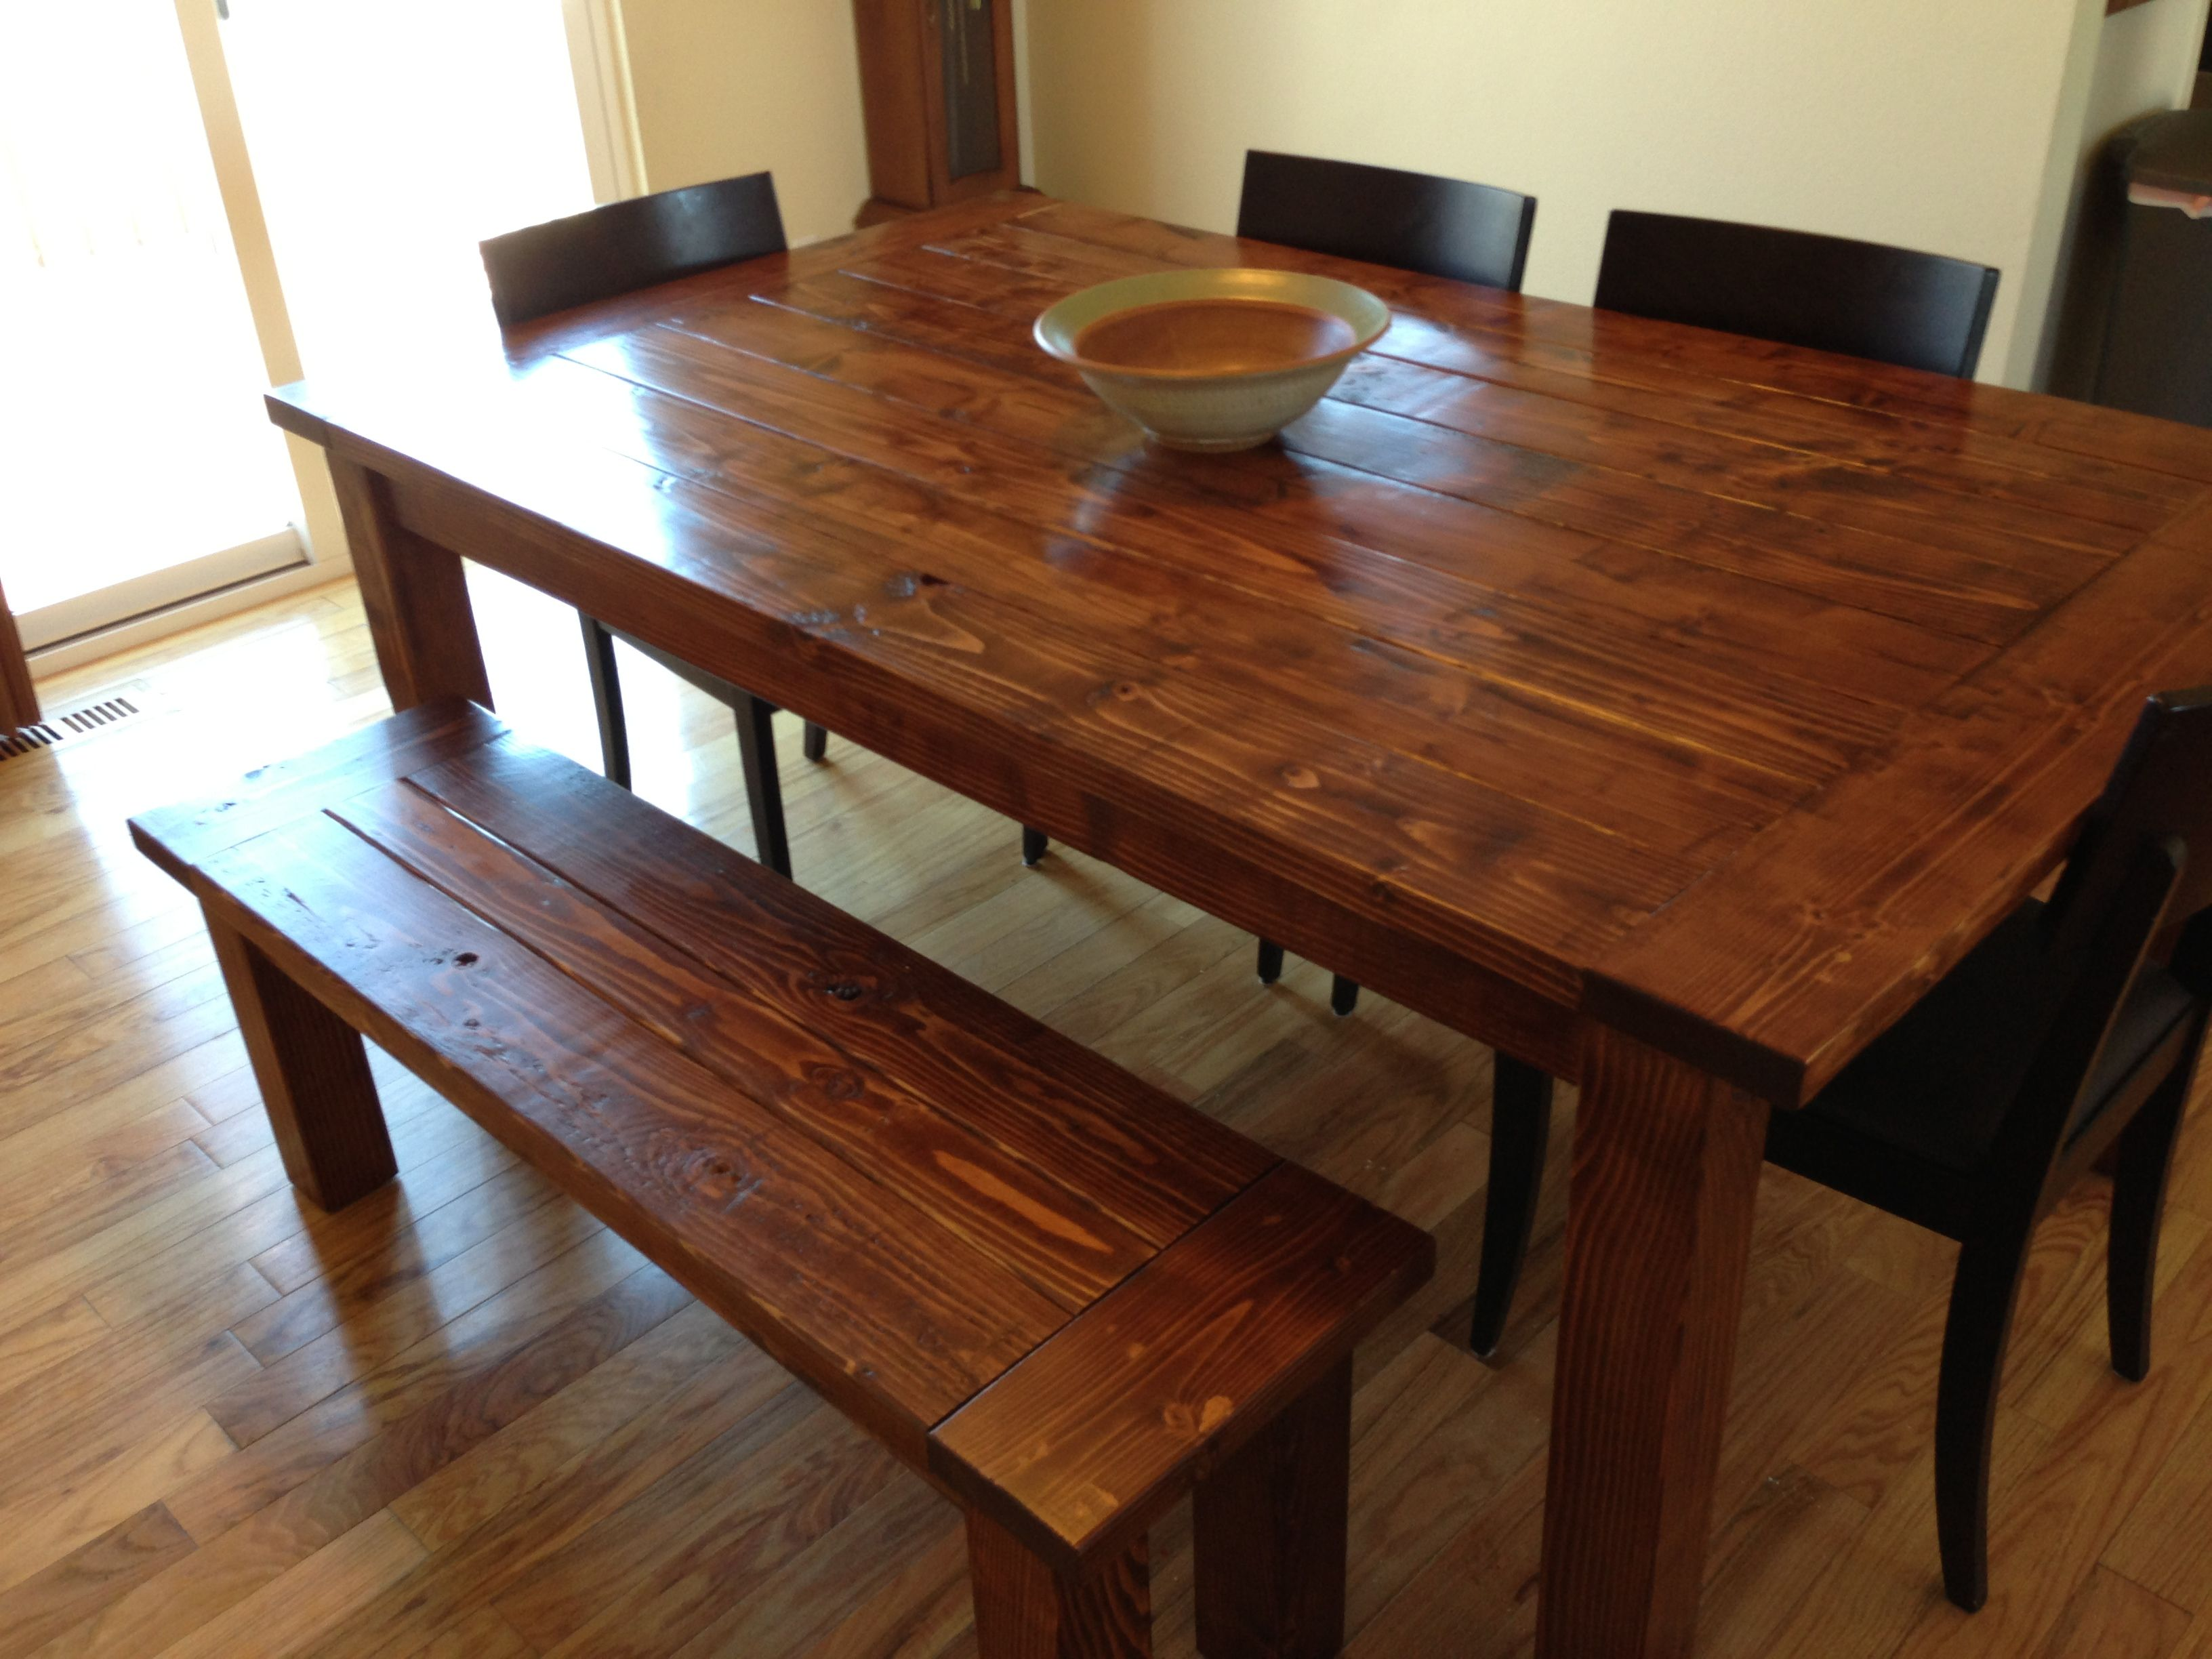 Farmhouse Table And Bench Made From Pine 2x6 2x4 4x4